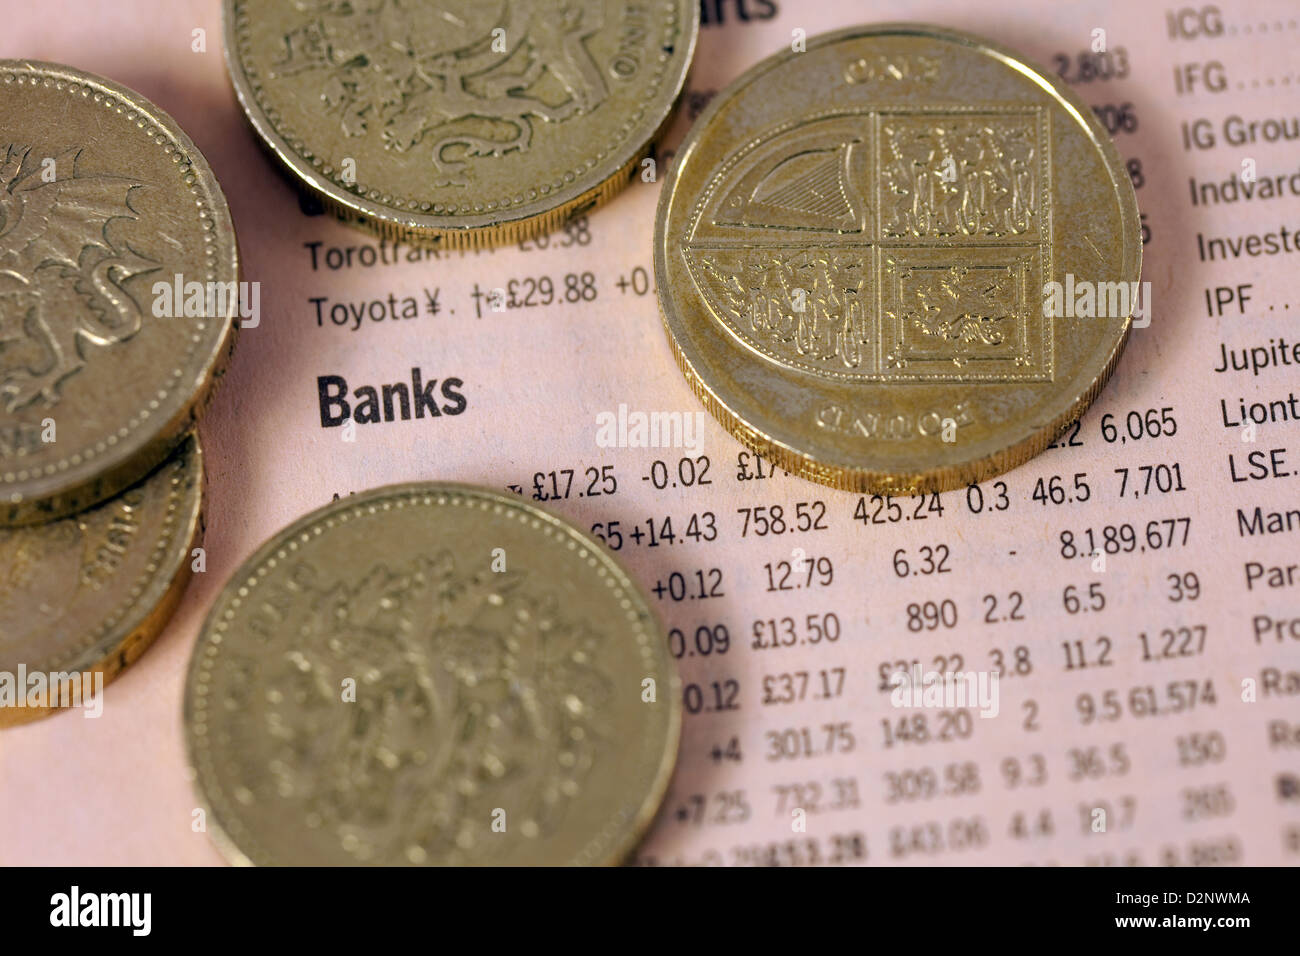 Banks - listing of stocks and shares values in the Financial Times newspaper, with pound coins, UK - Stock Image